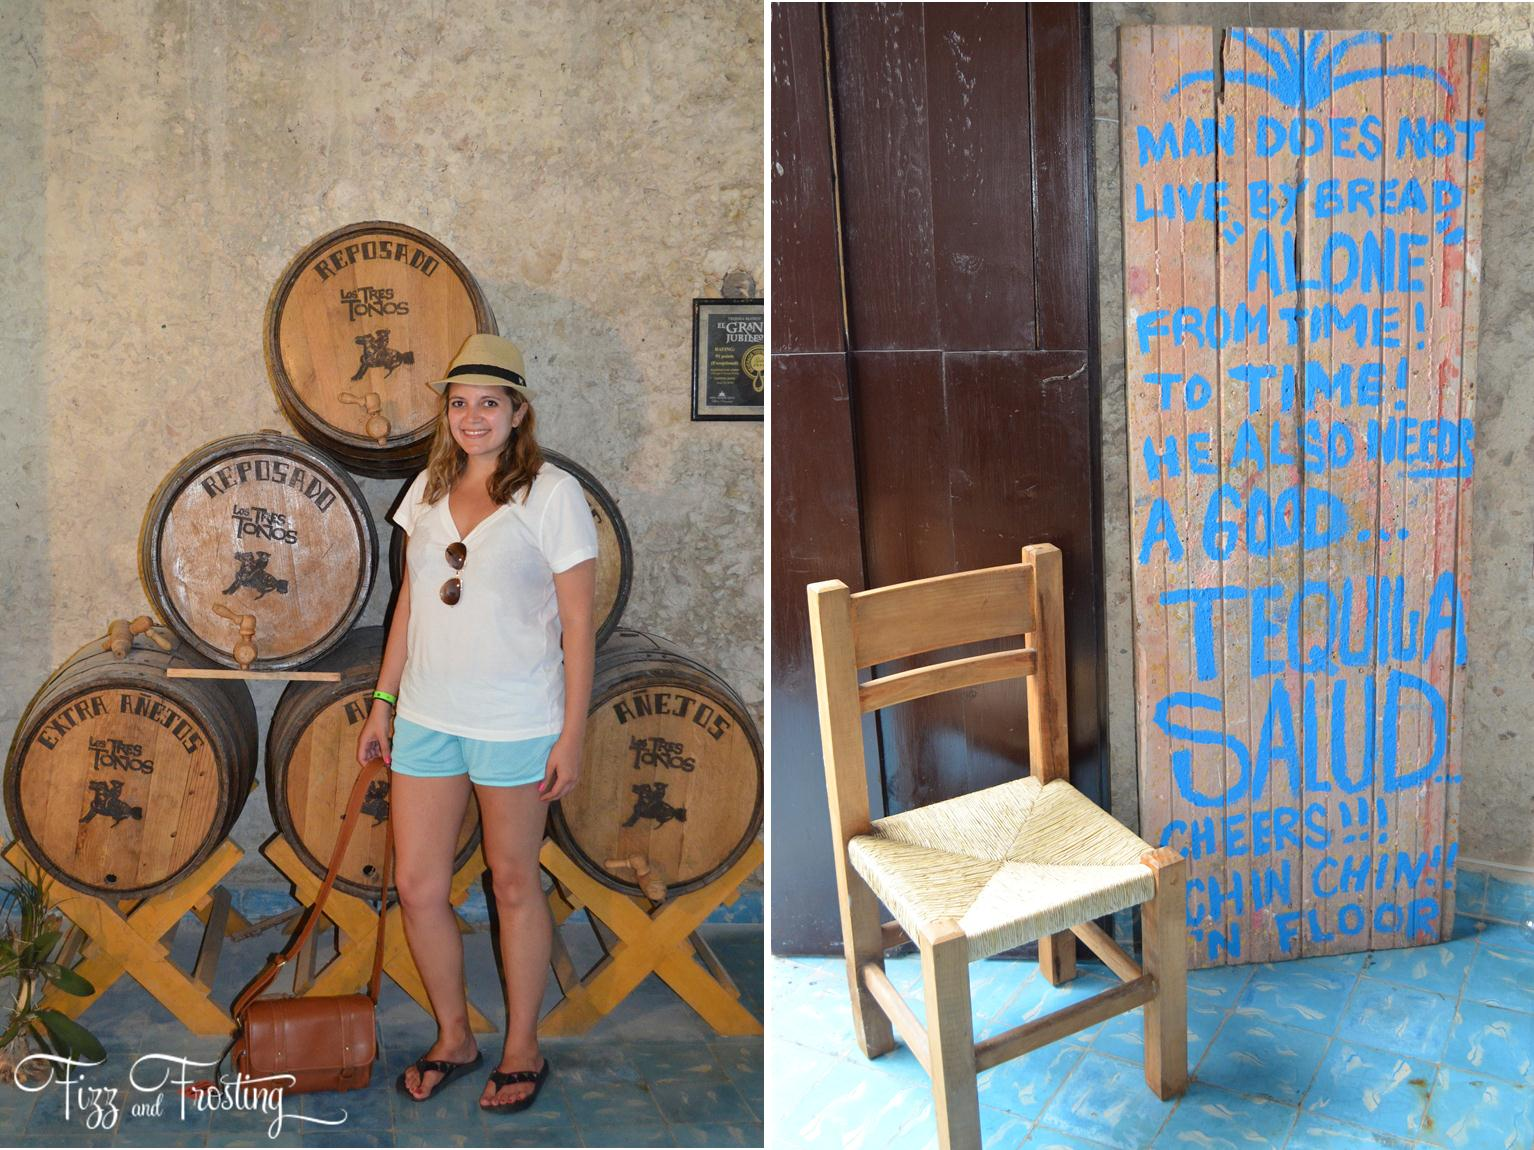 tequila tasting near cancun is a must-do while on vacation in Mexico! - Click through to see about the other sites you won't want to miss! | www.bylaurenm.com